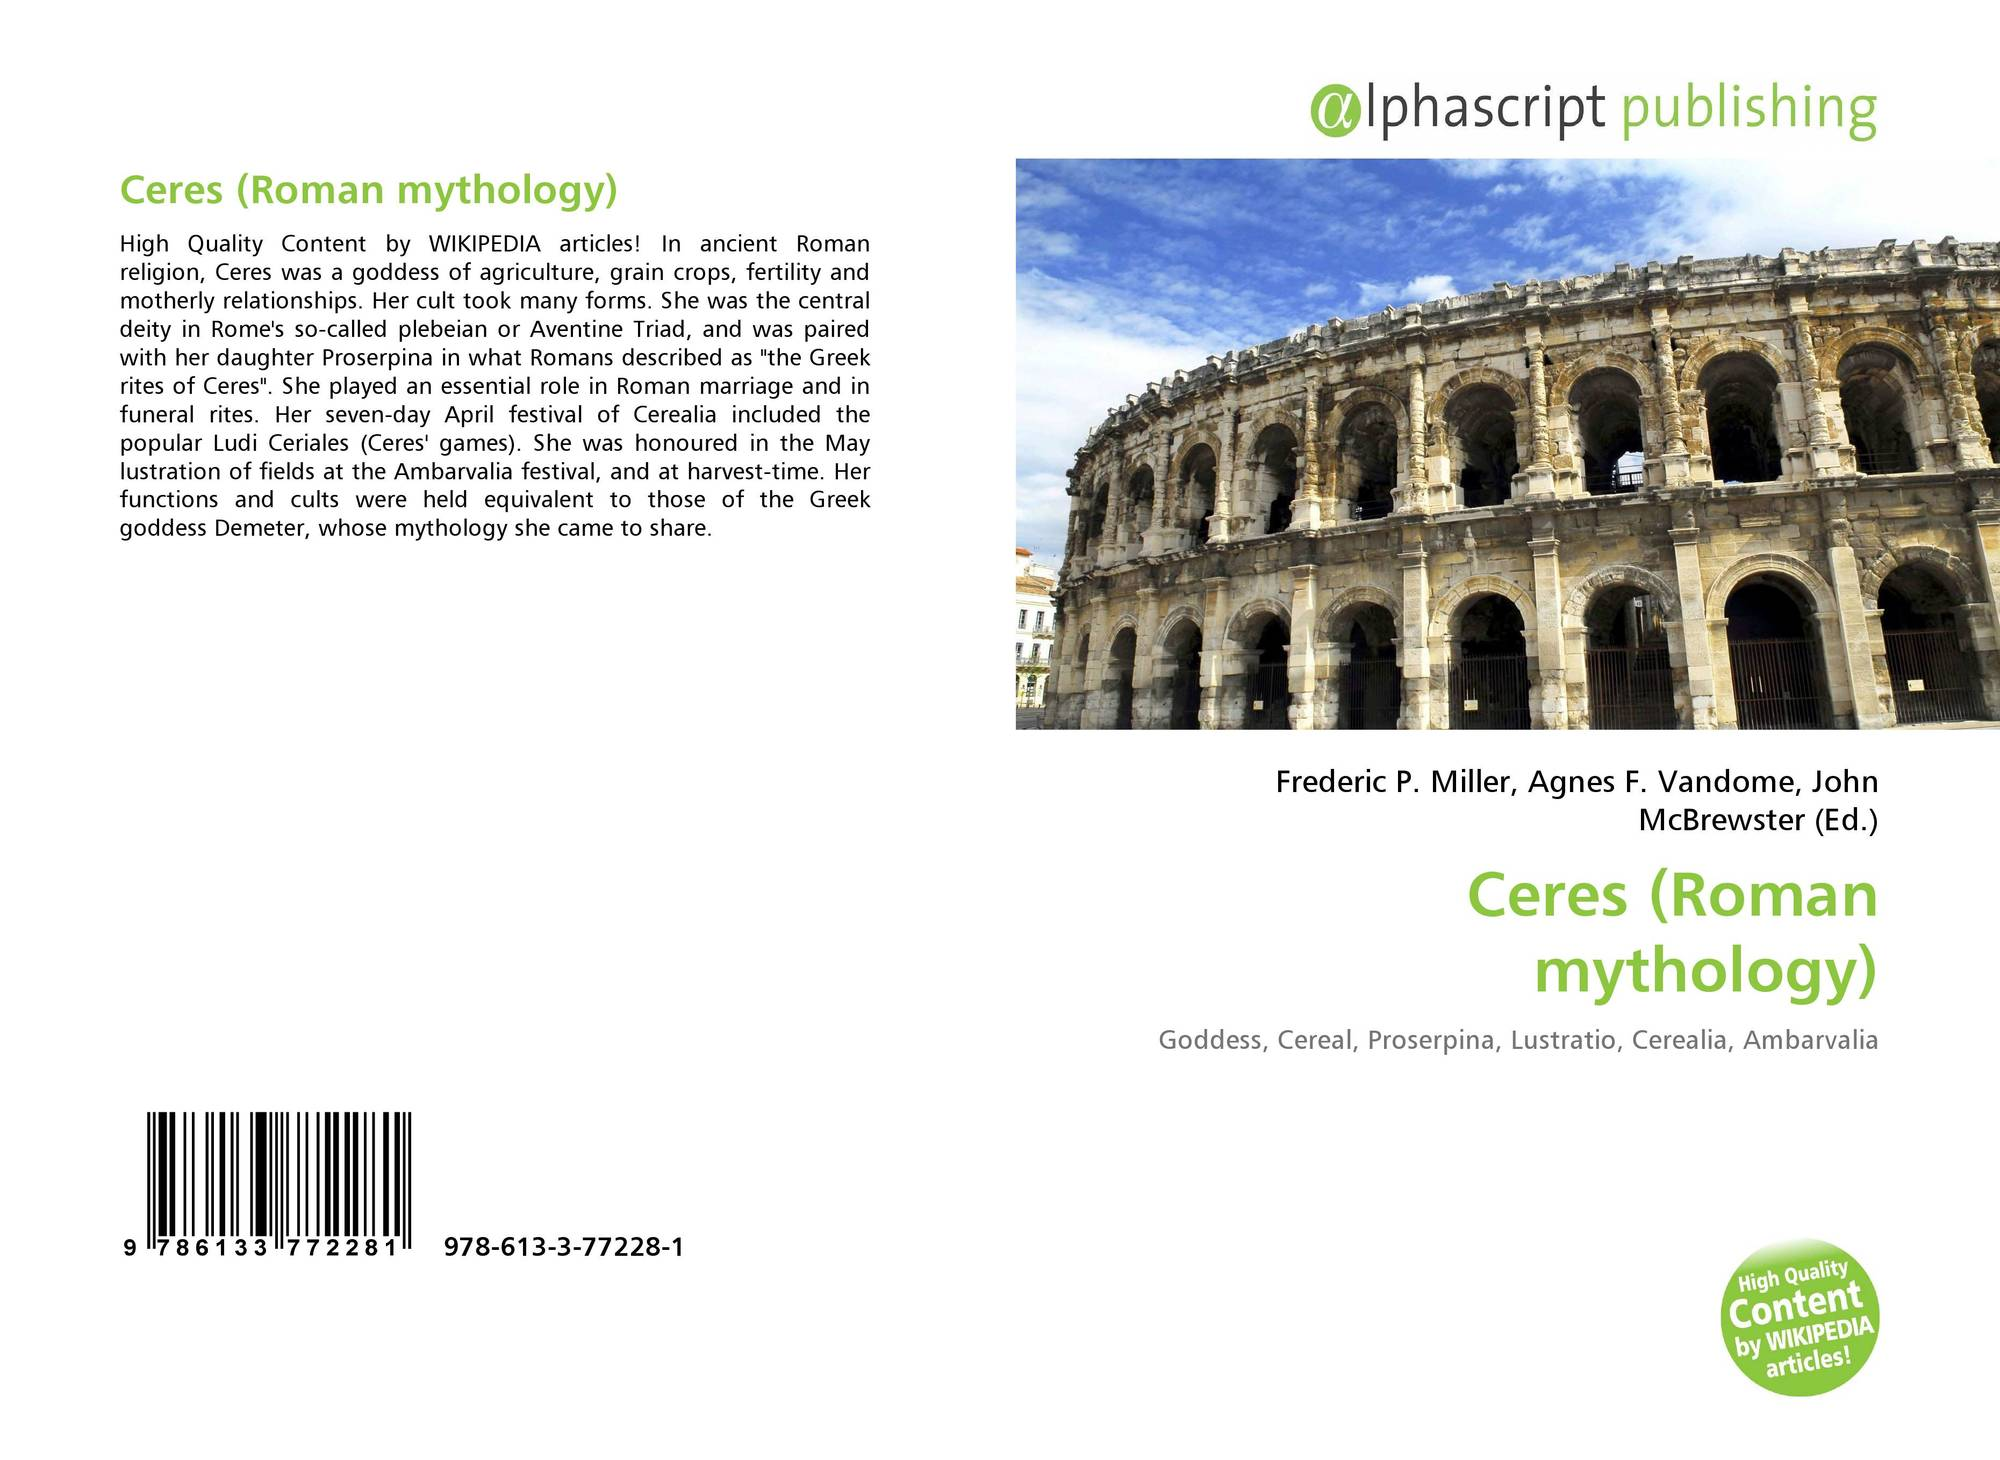 a history of caesars reign as roman emperor